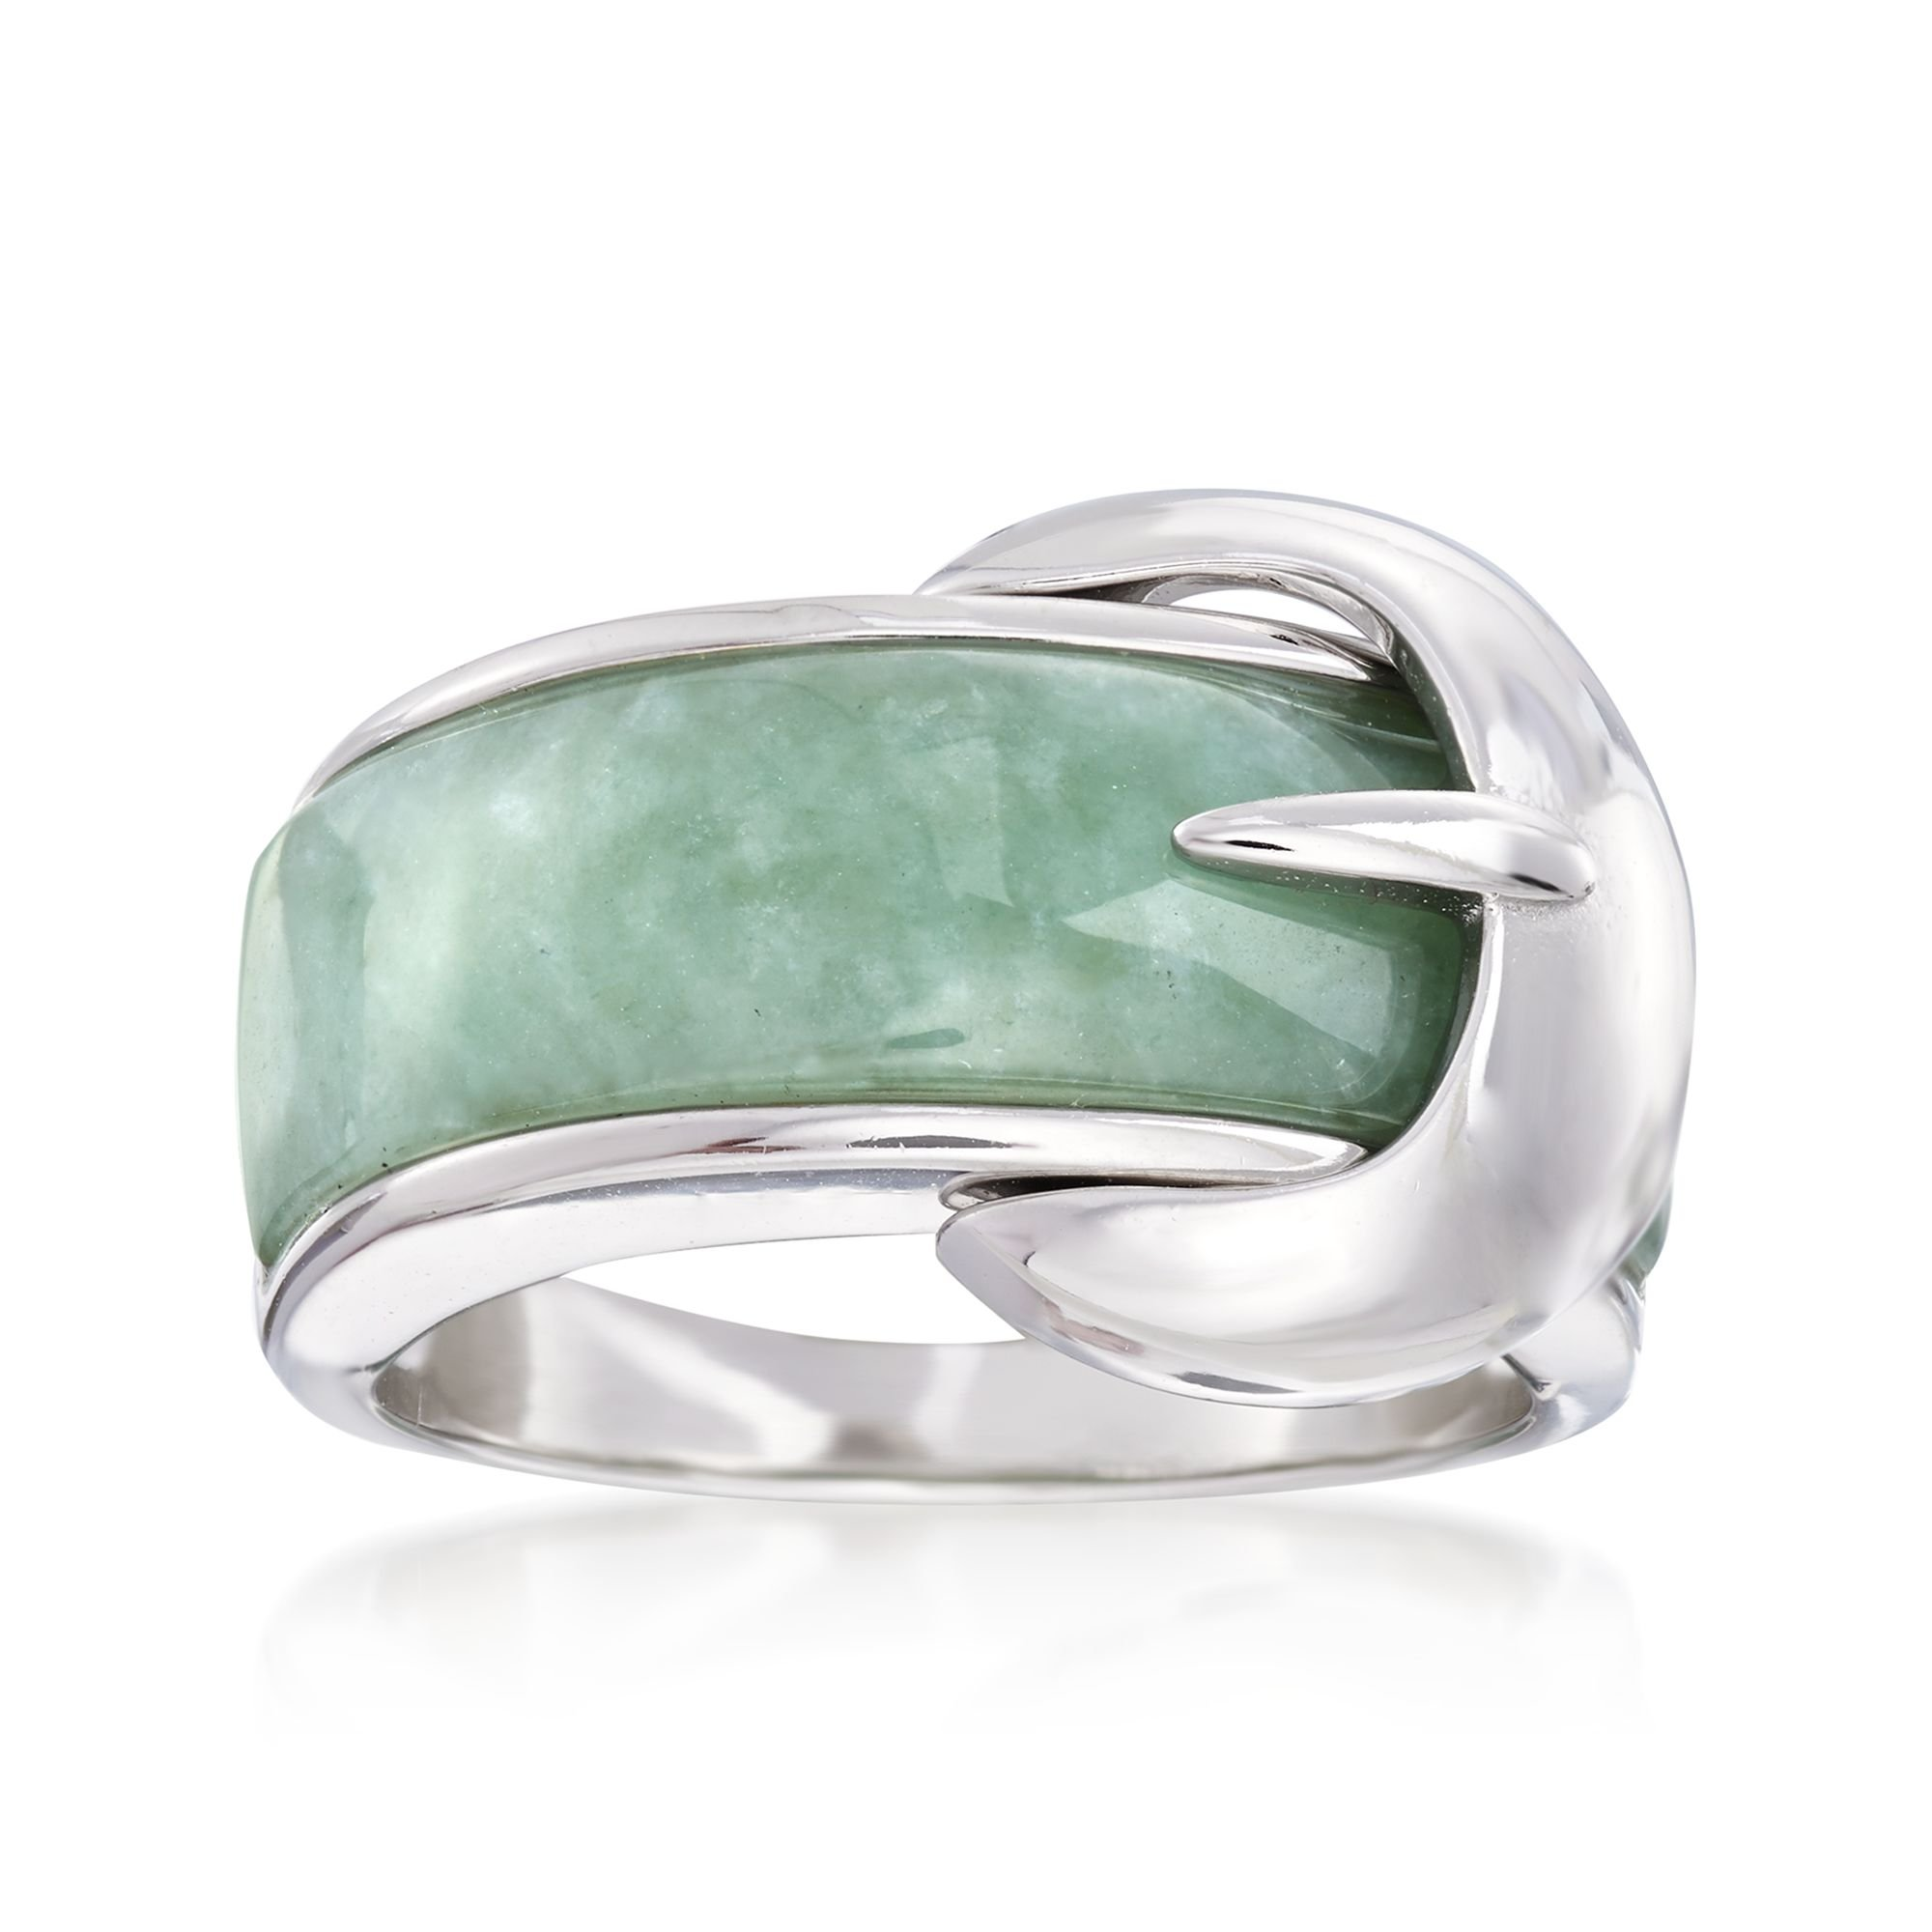 Ross-Simons Green Jade Buckle Ring in Sterling Silver